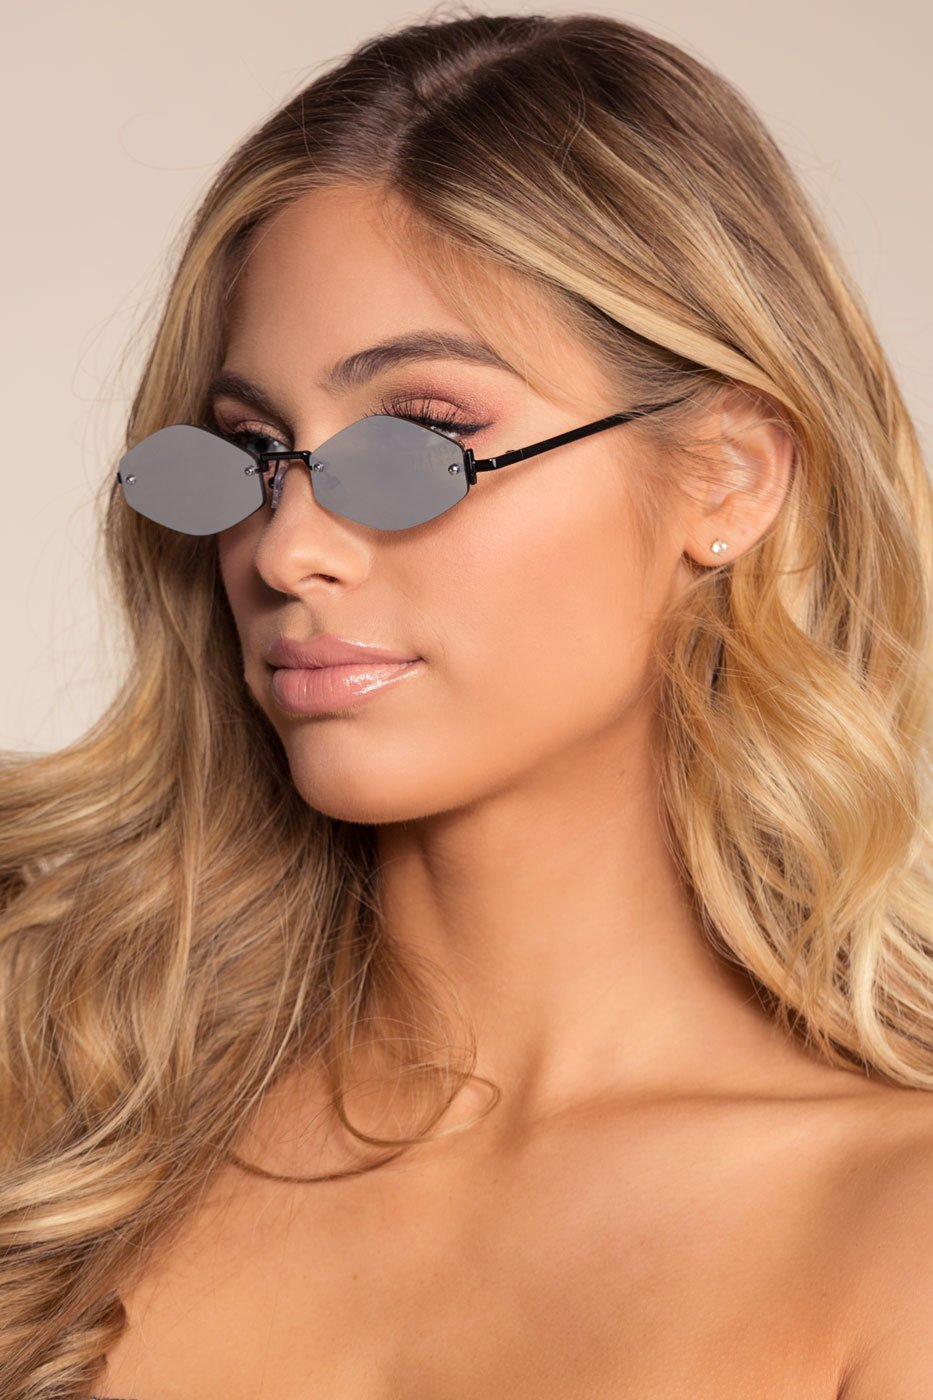 Accessories - Zoa Sunglasses - Black Mirrored